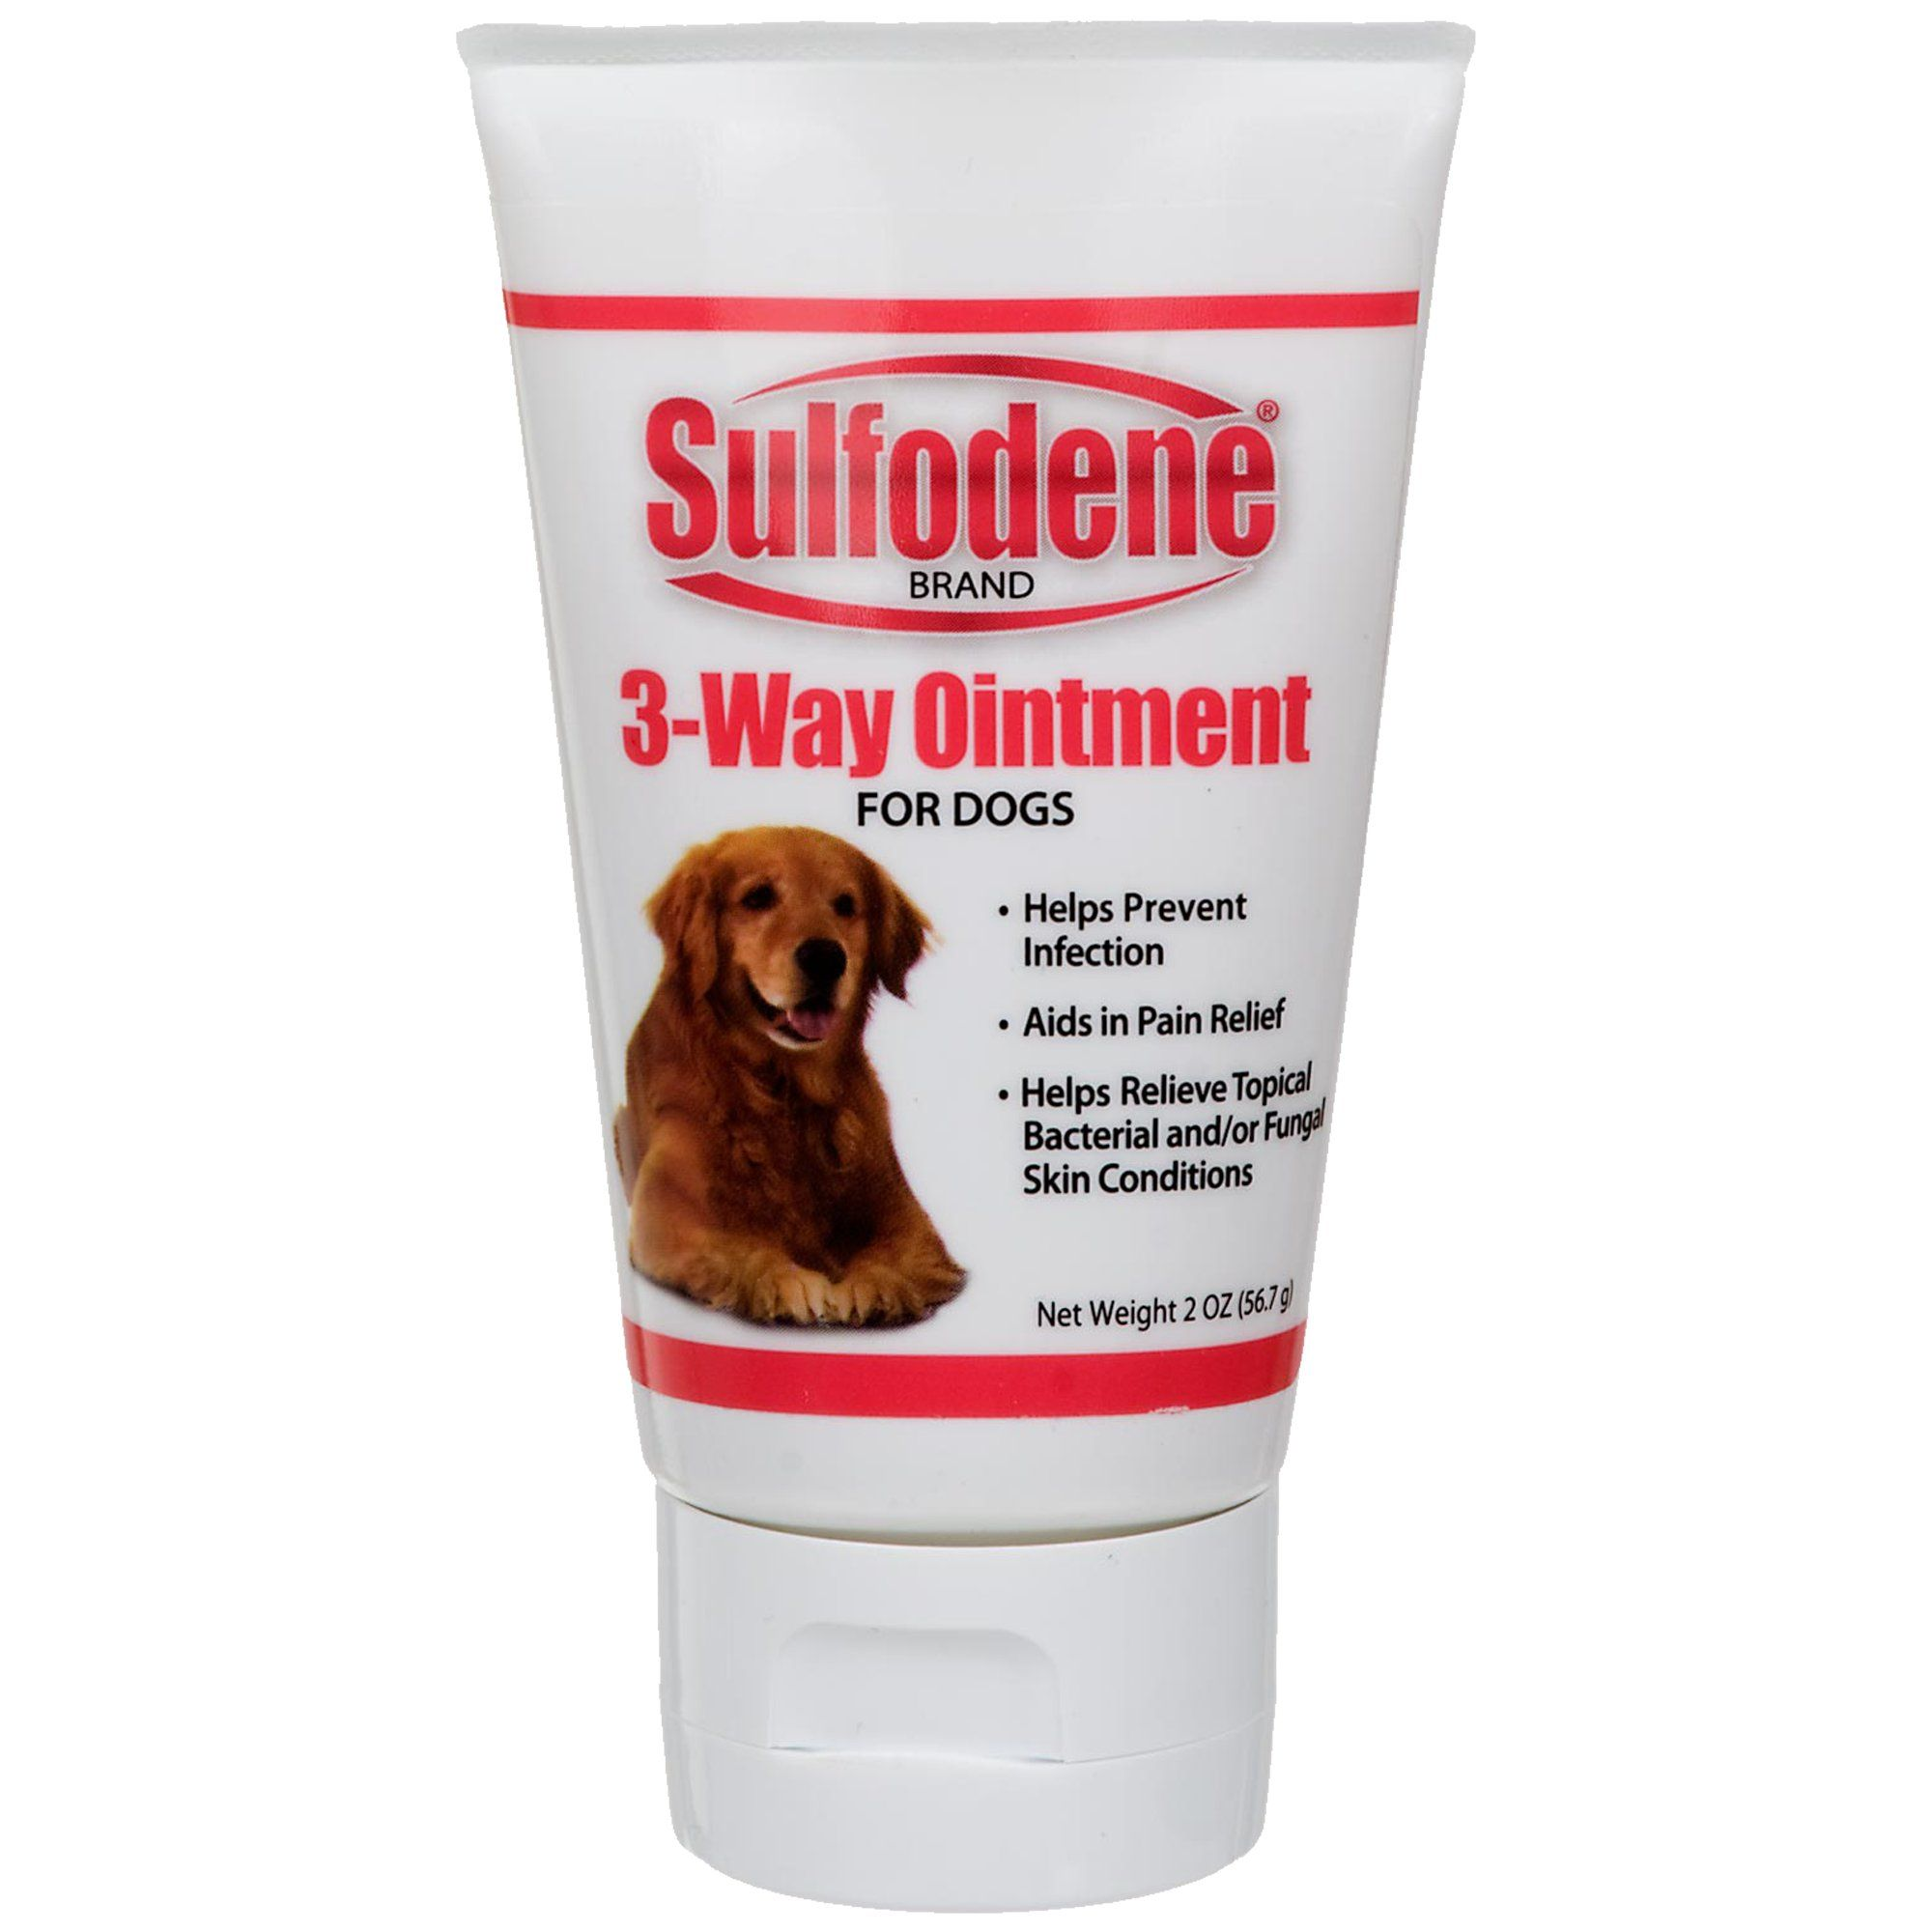 Sulfodene 3Way Ointment for Dogs Home remedies for skin